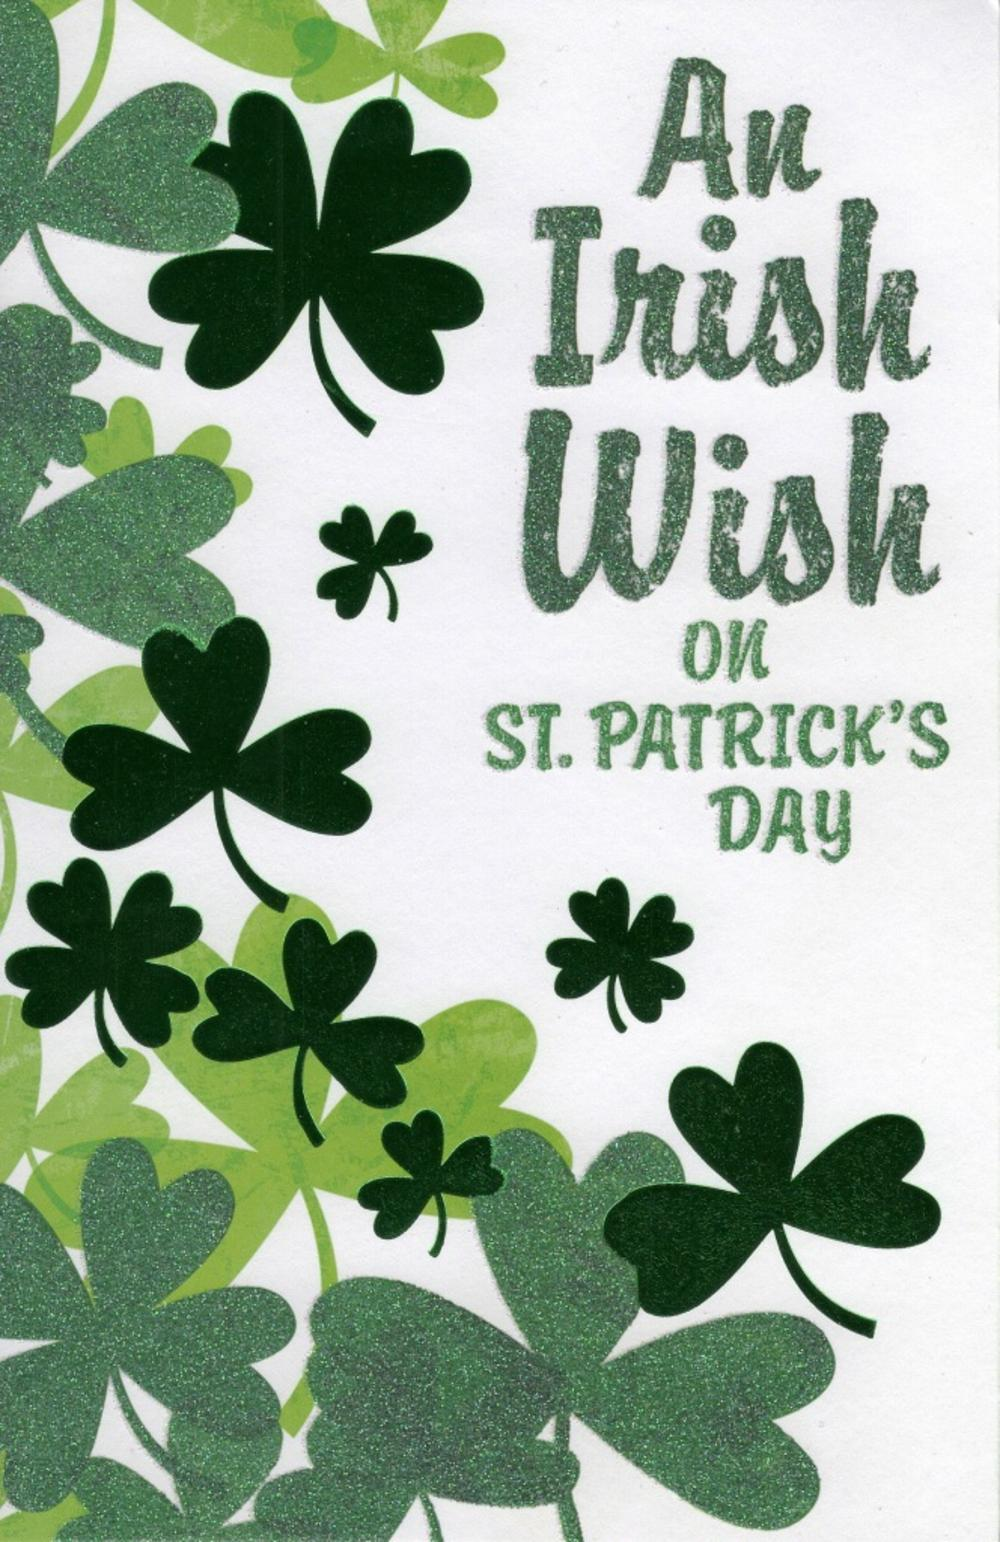 An Irish Wish On St Patrick's Day Card